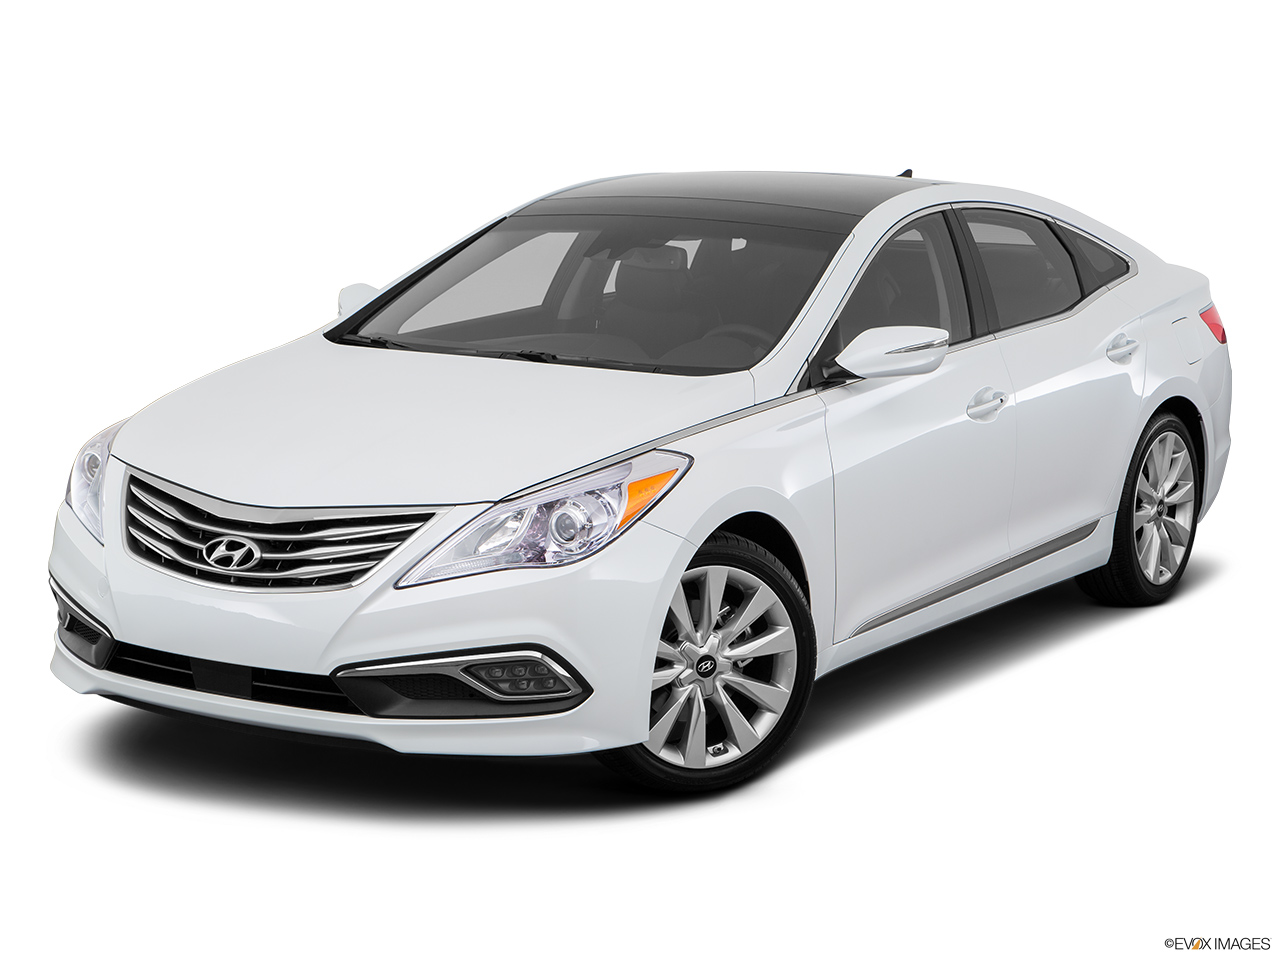 2017 hyundai azera prices in bahrain gulf specs reviews. Black Bedroom Furniture Sets. Home Design Ideas